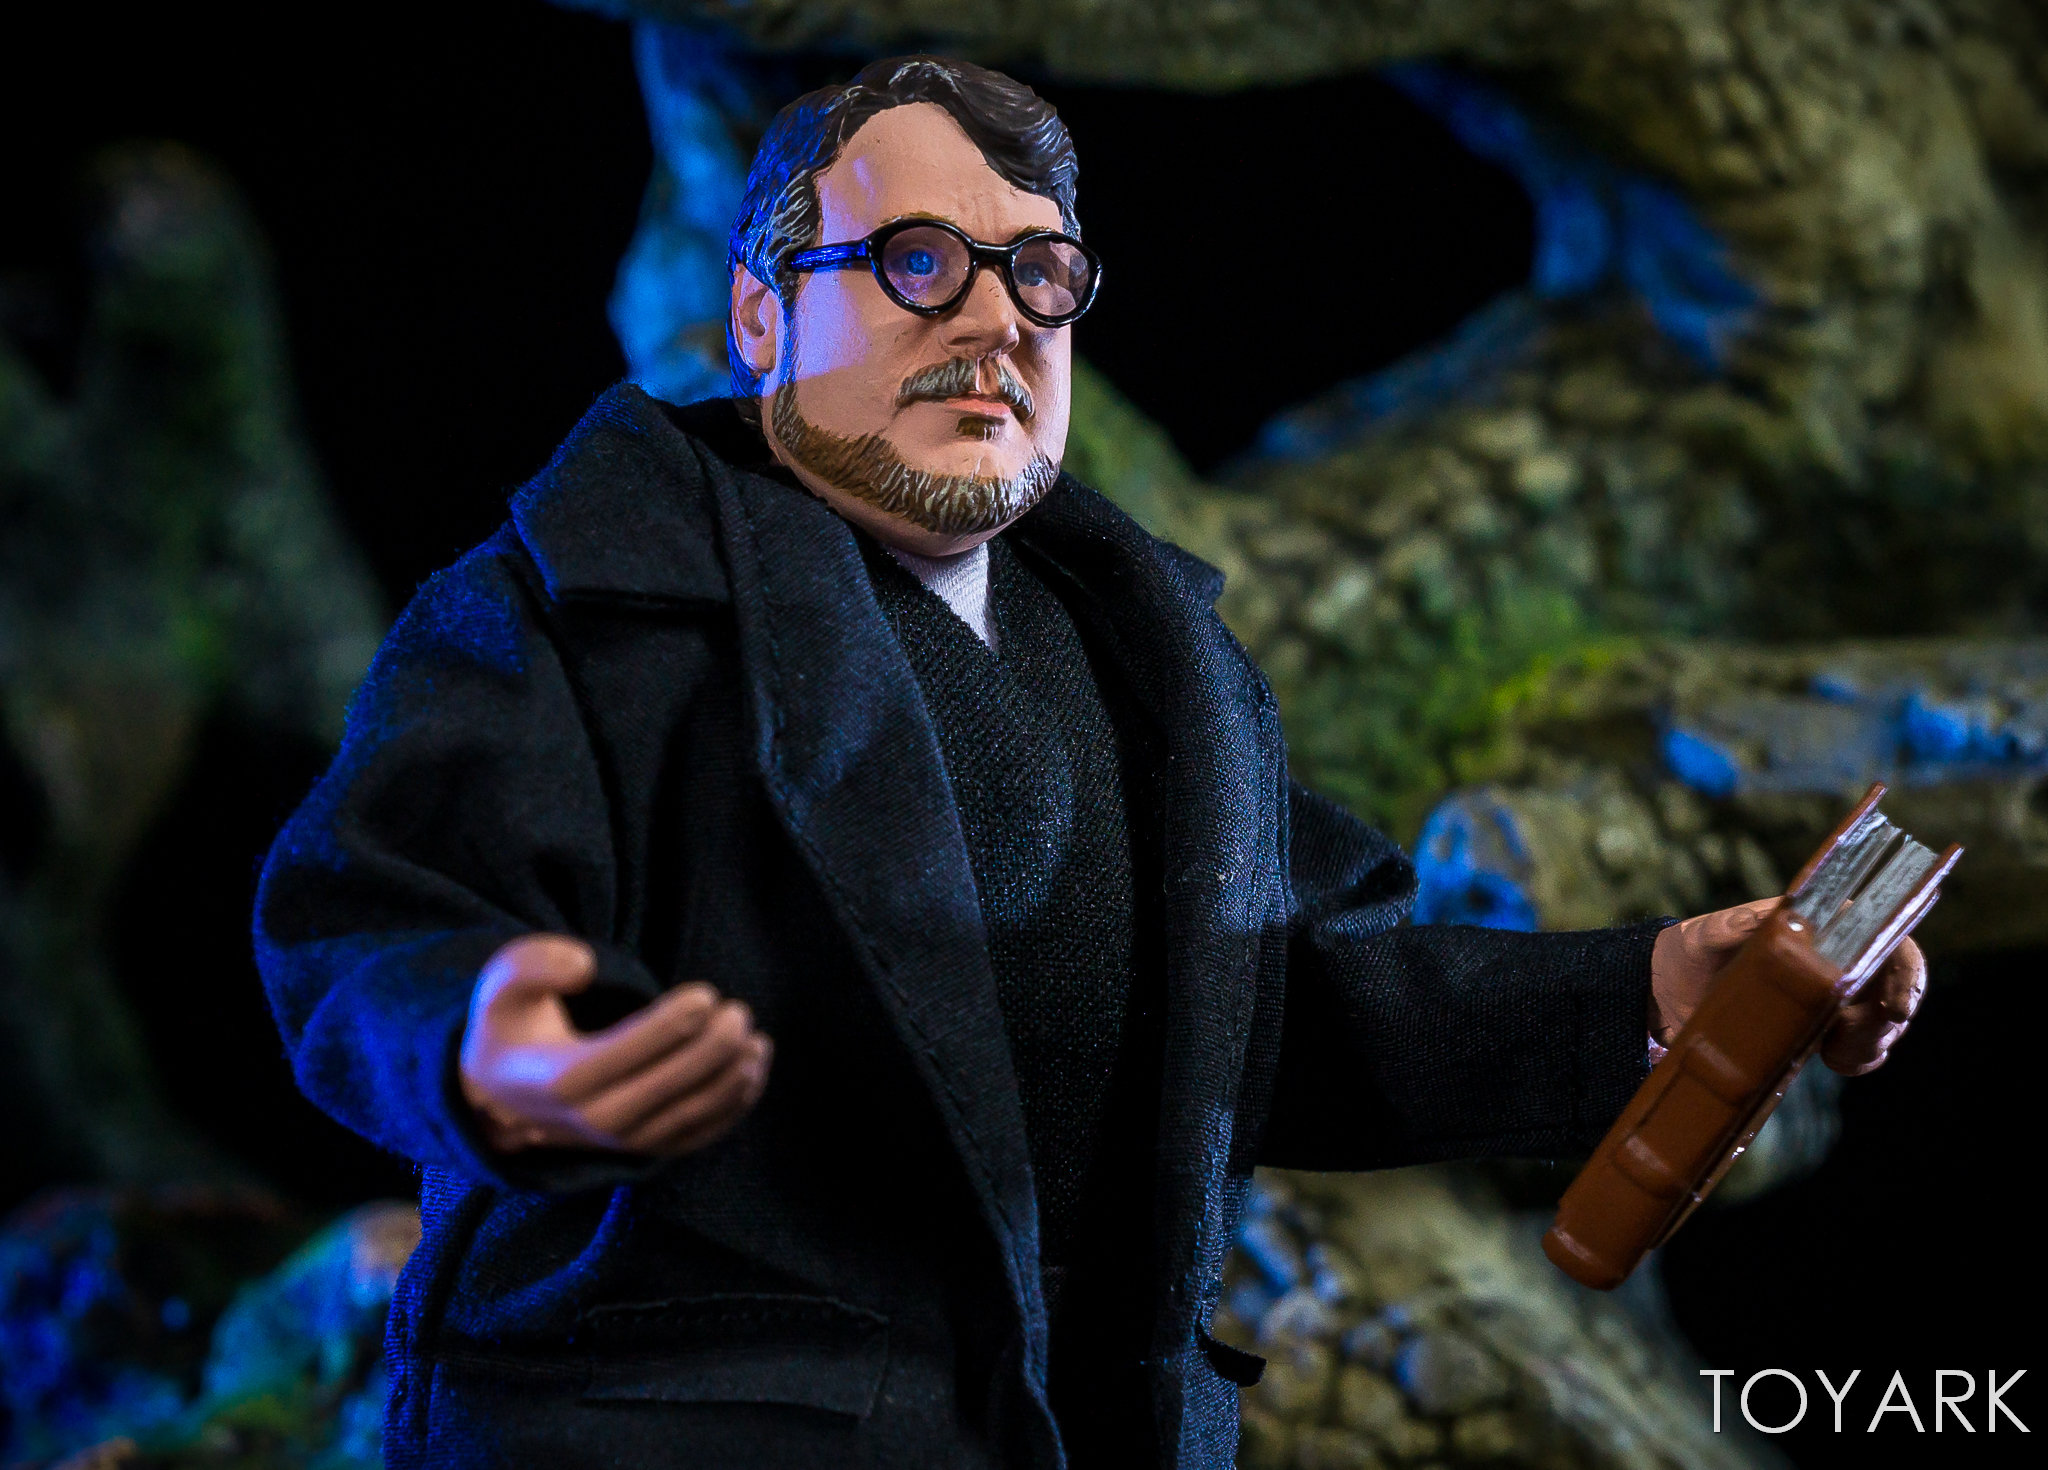 https://news.toyark.com/wp-content/uploads/sites/4/2018/07/NECA-Guillermo-del-Toro-SDCC-Figure-020.jpg